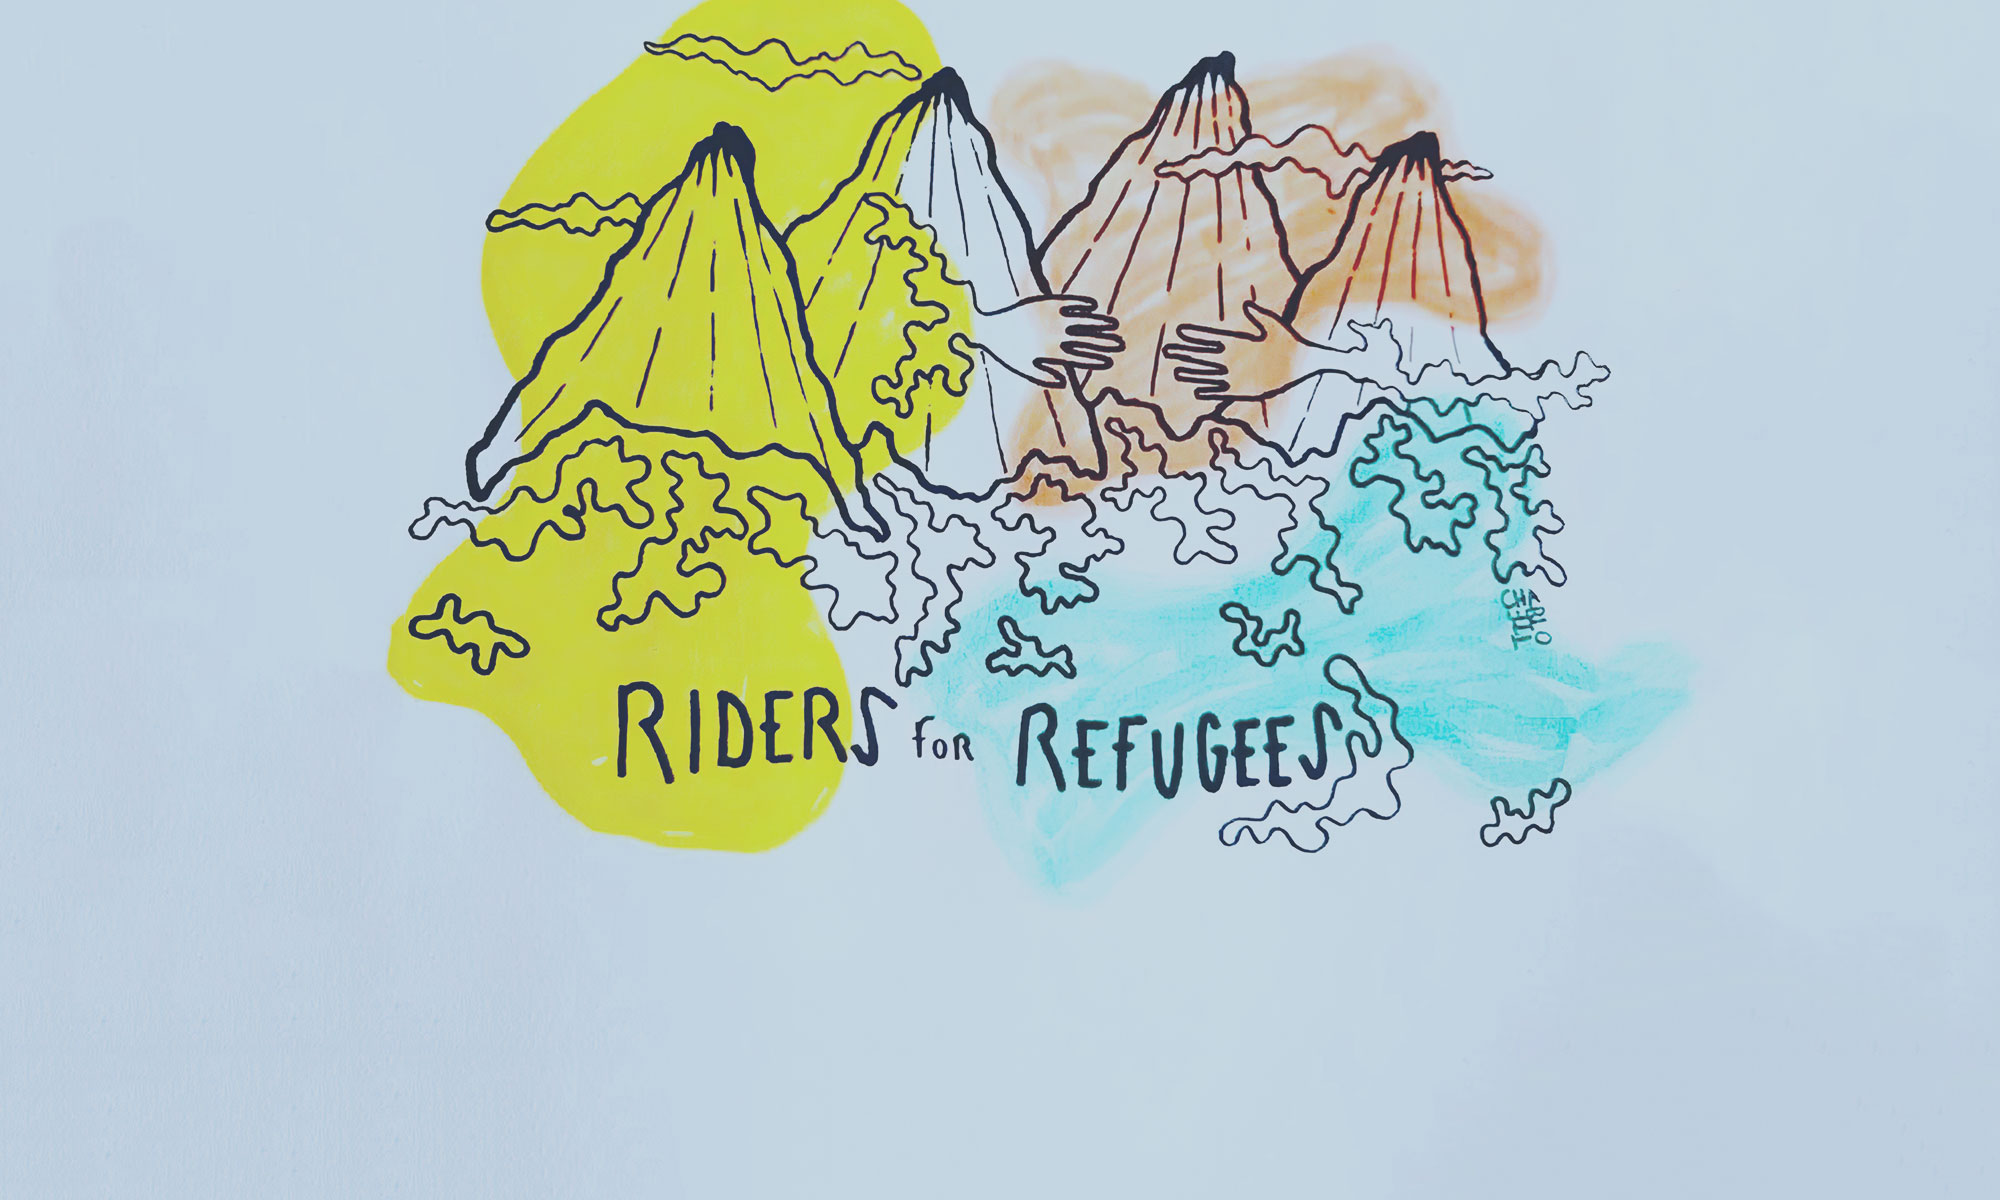 Riders for Refugees